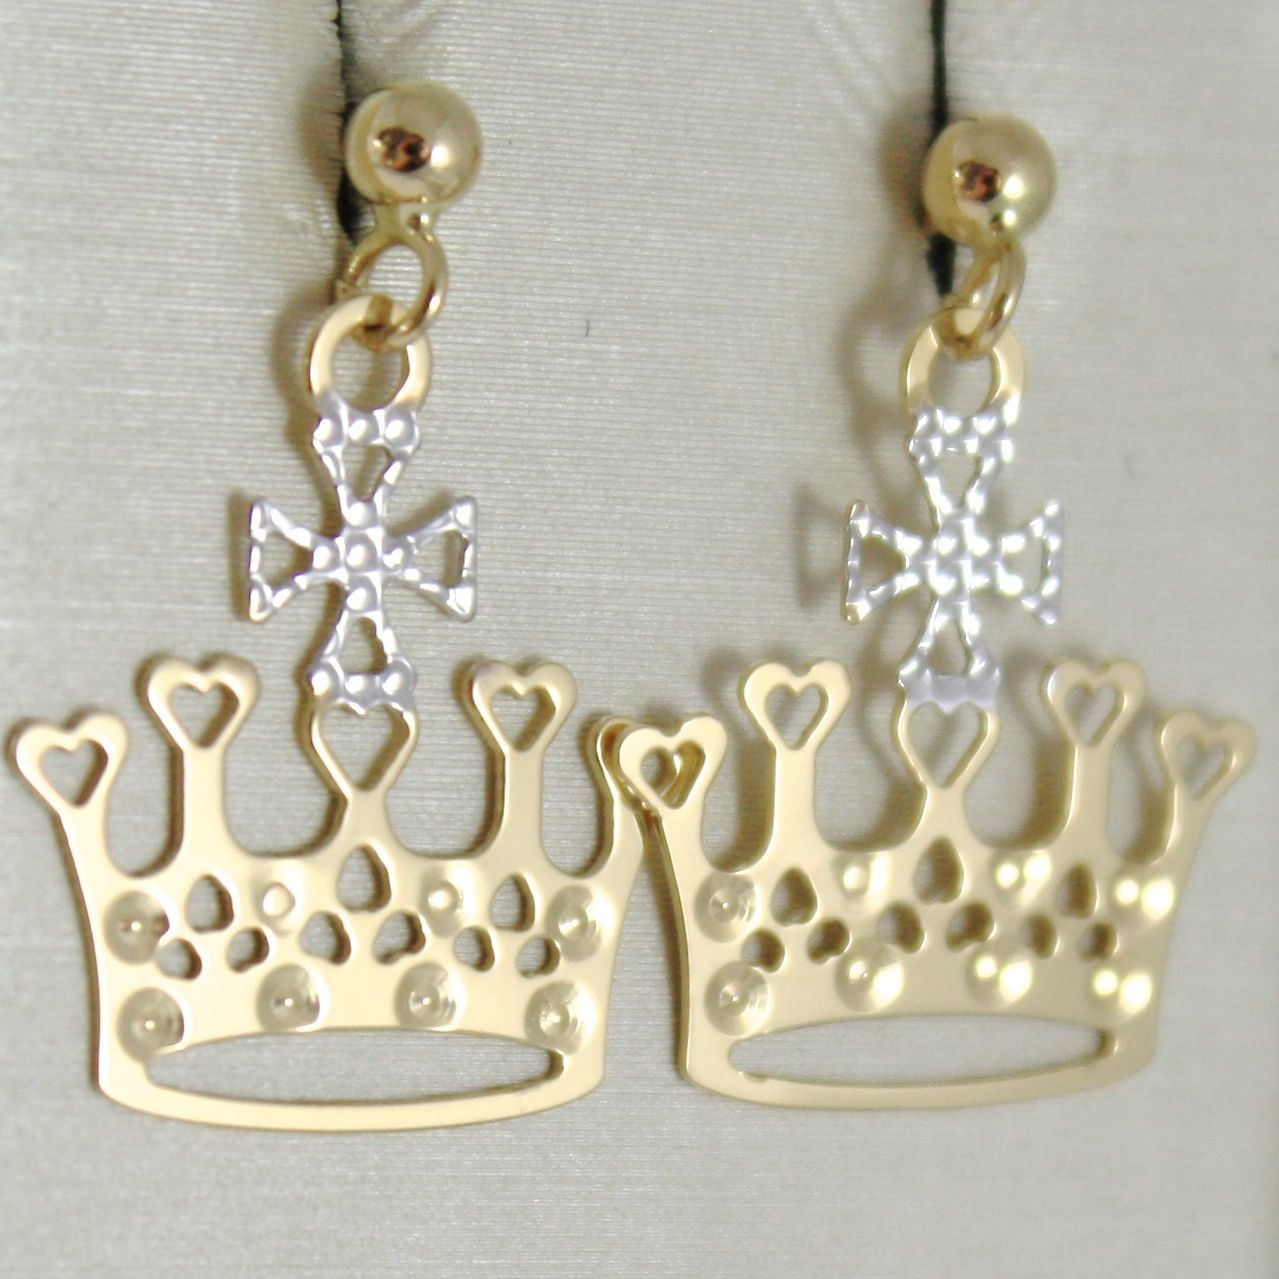 YELLOW GOLD EARRINGS WHITE 750 18K, CROWN, QUEEN, 2.2 CM, MADE IN ITALY